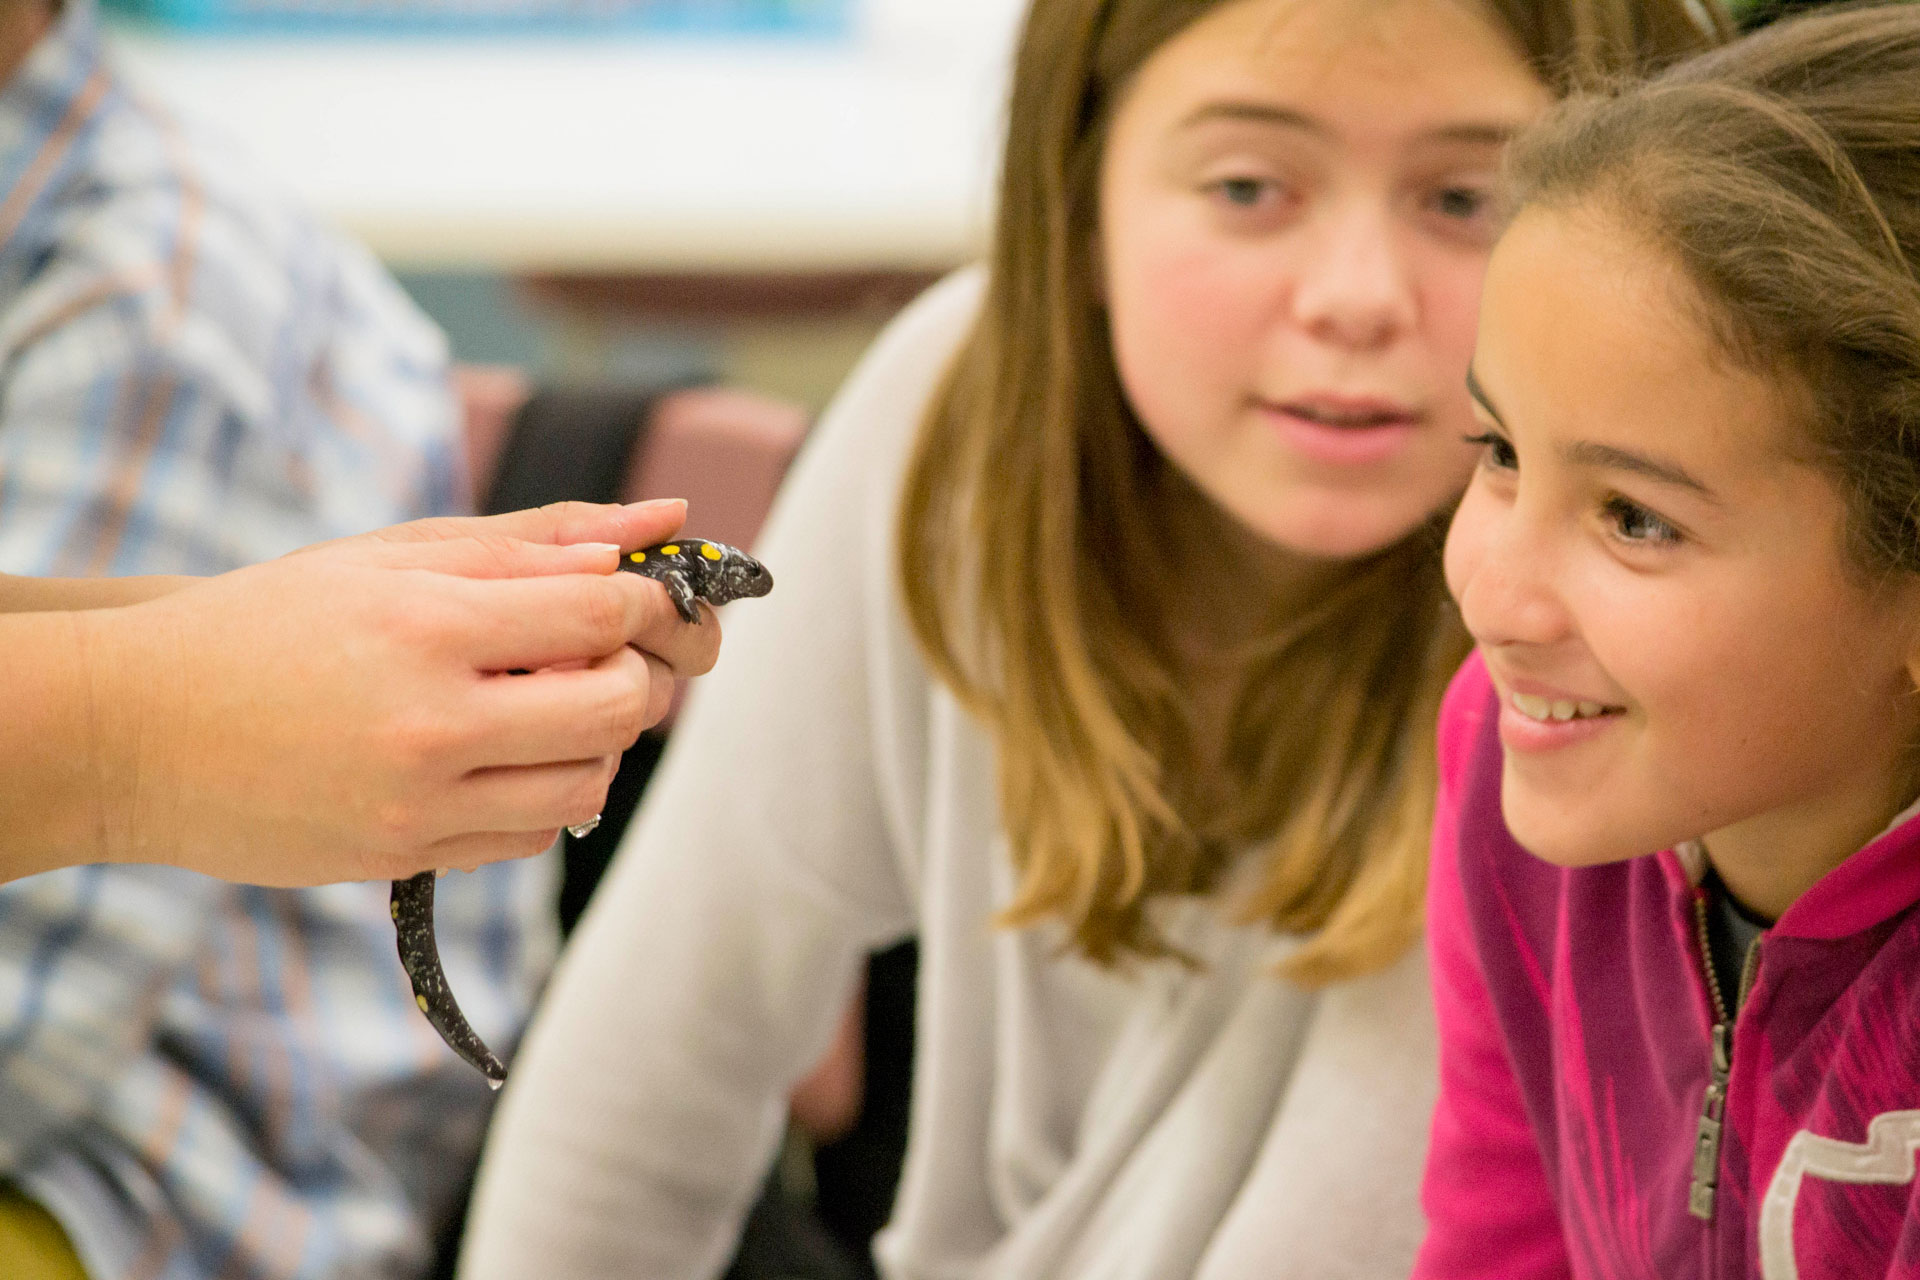 Students observing a lizard